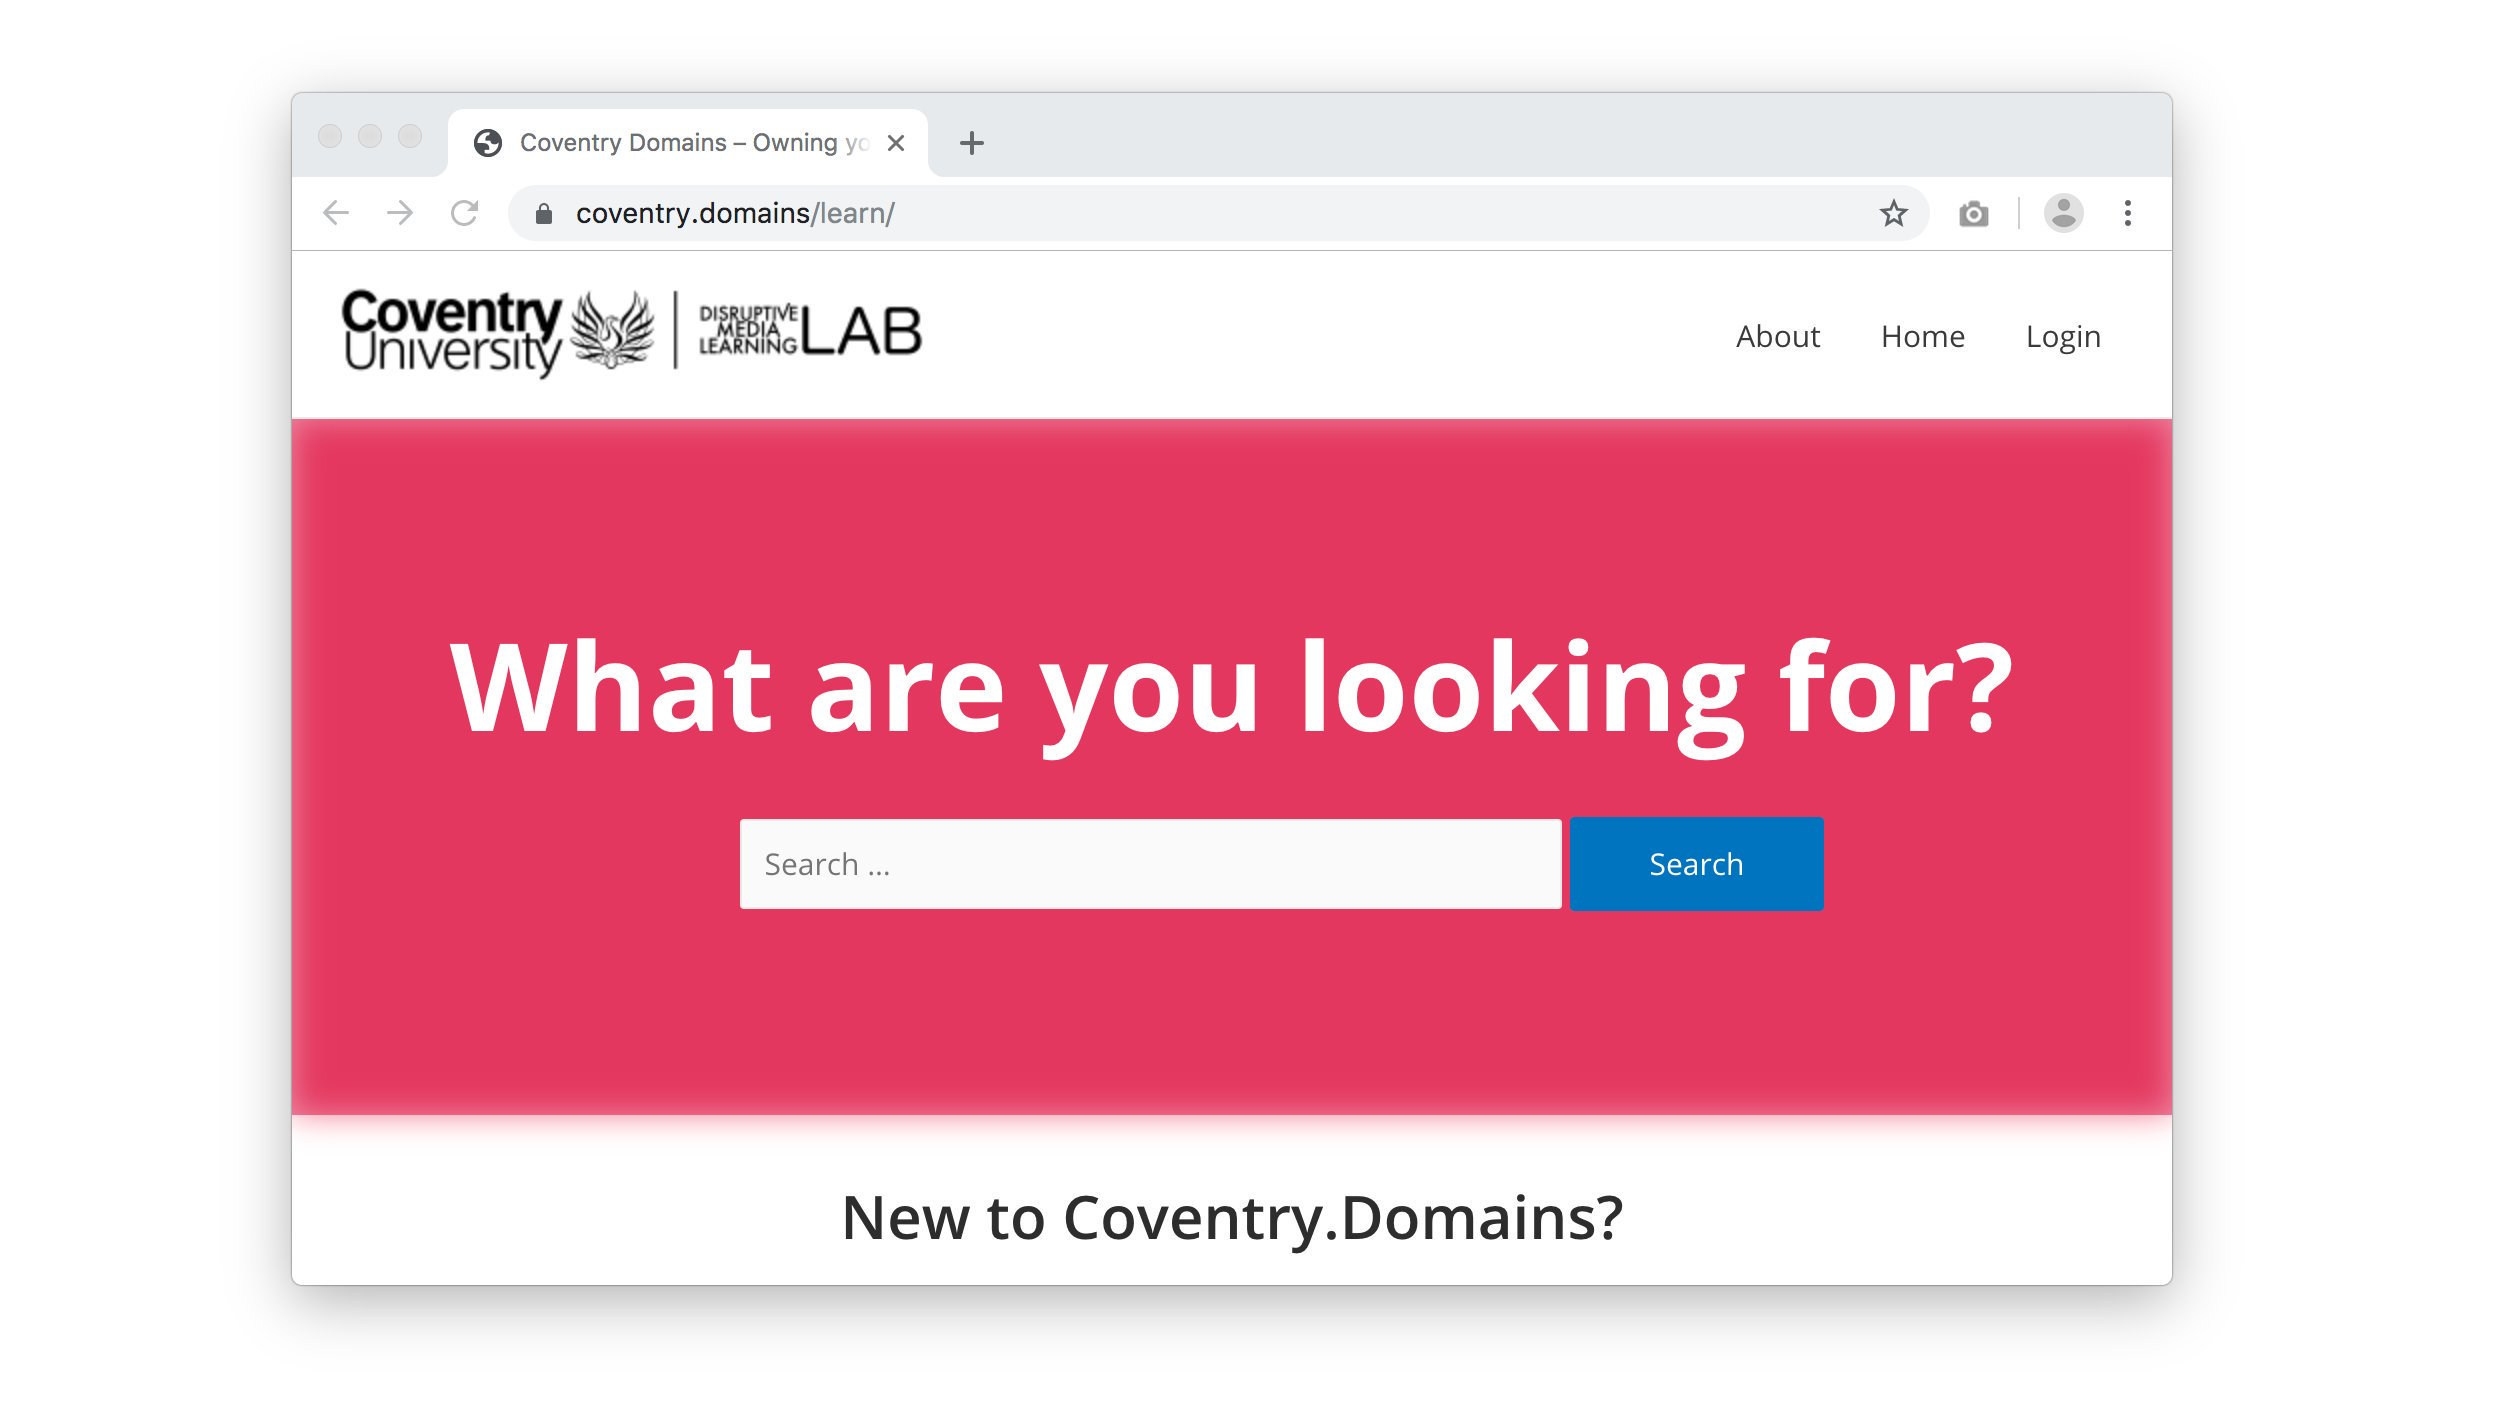 Screenshot of the new Coventry.Domains learning resources website which can be found at coventry.domains/learn